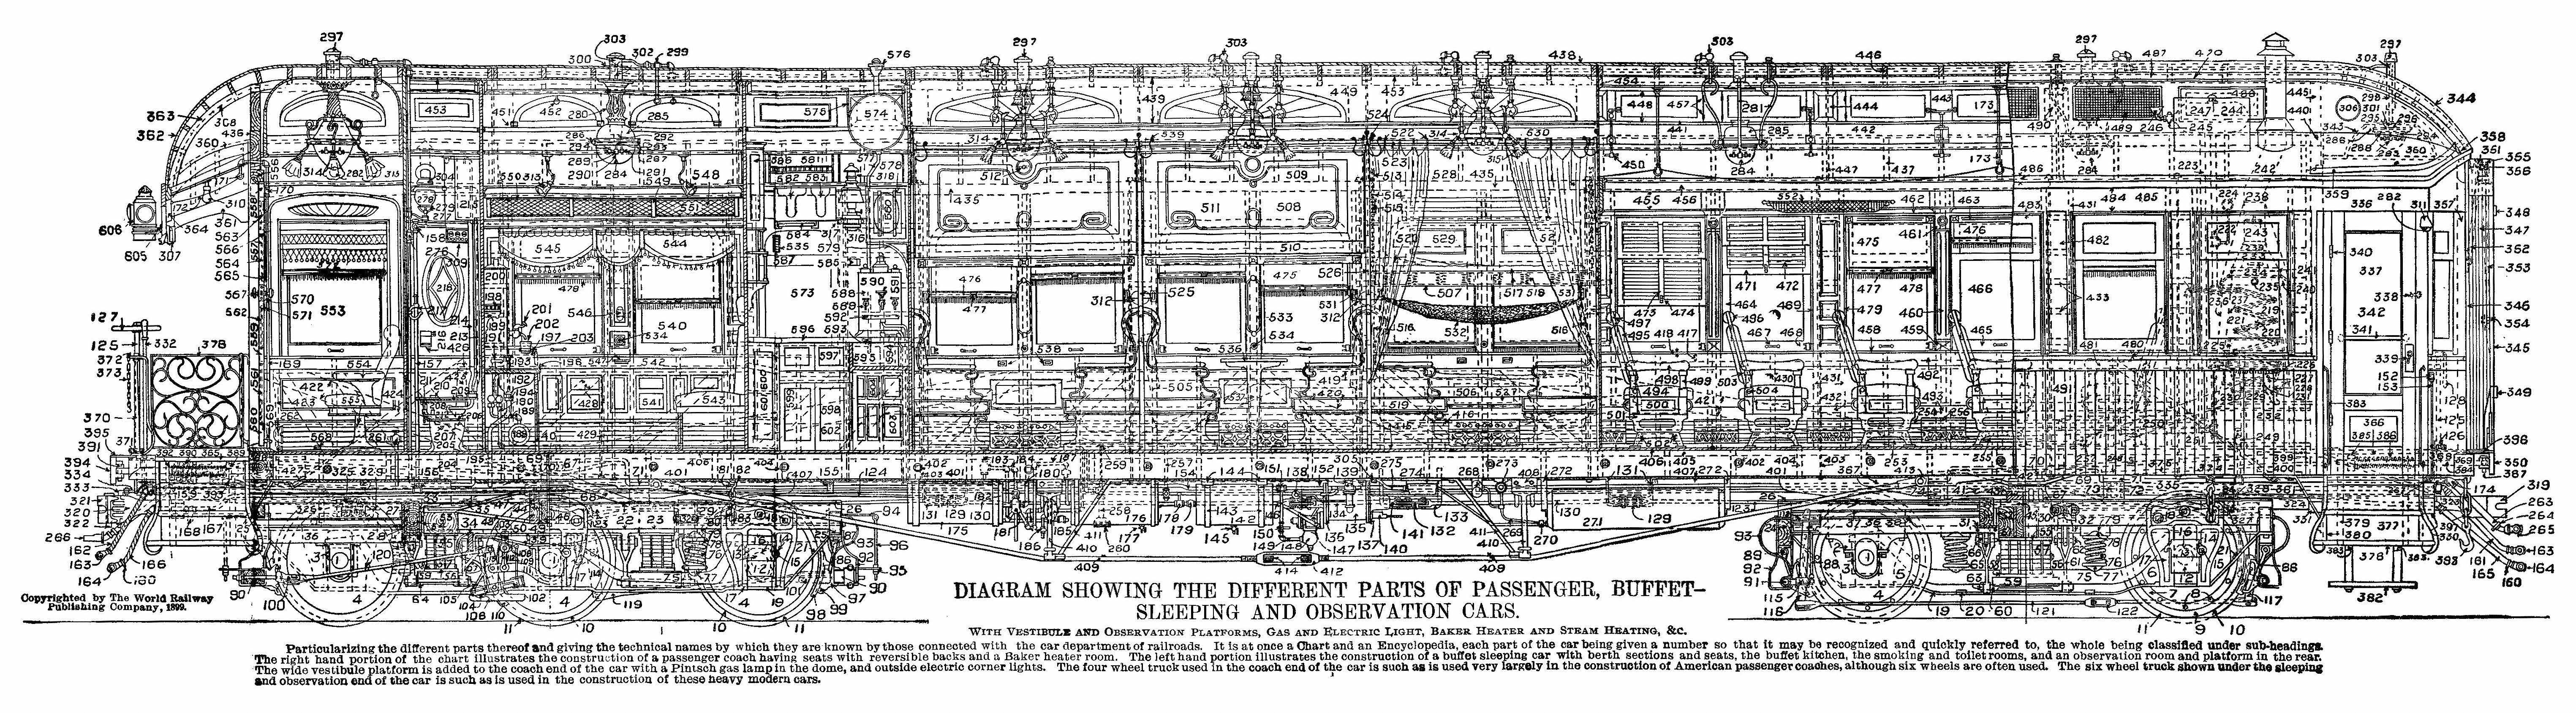 Railroad Passenger Car Composite Diagram (1899)